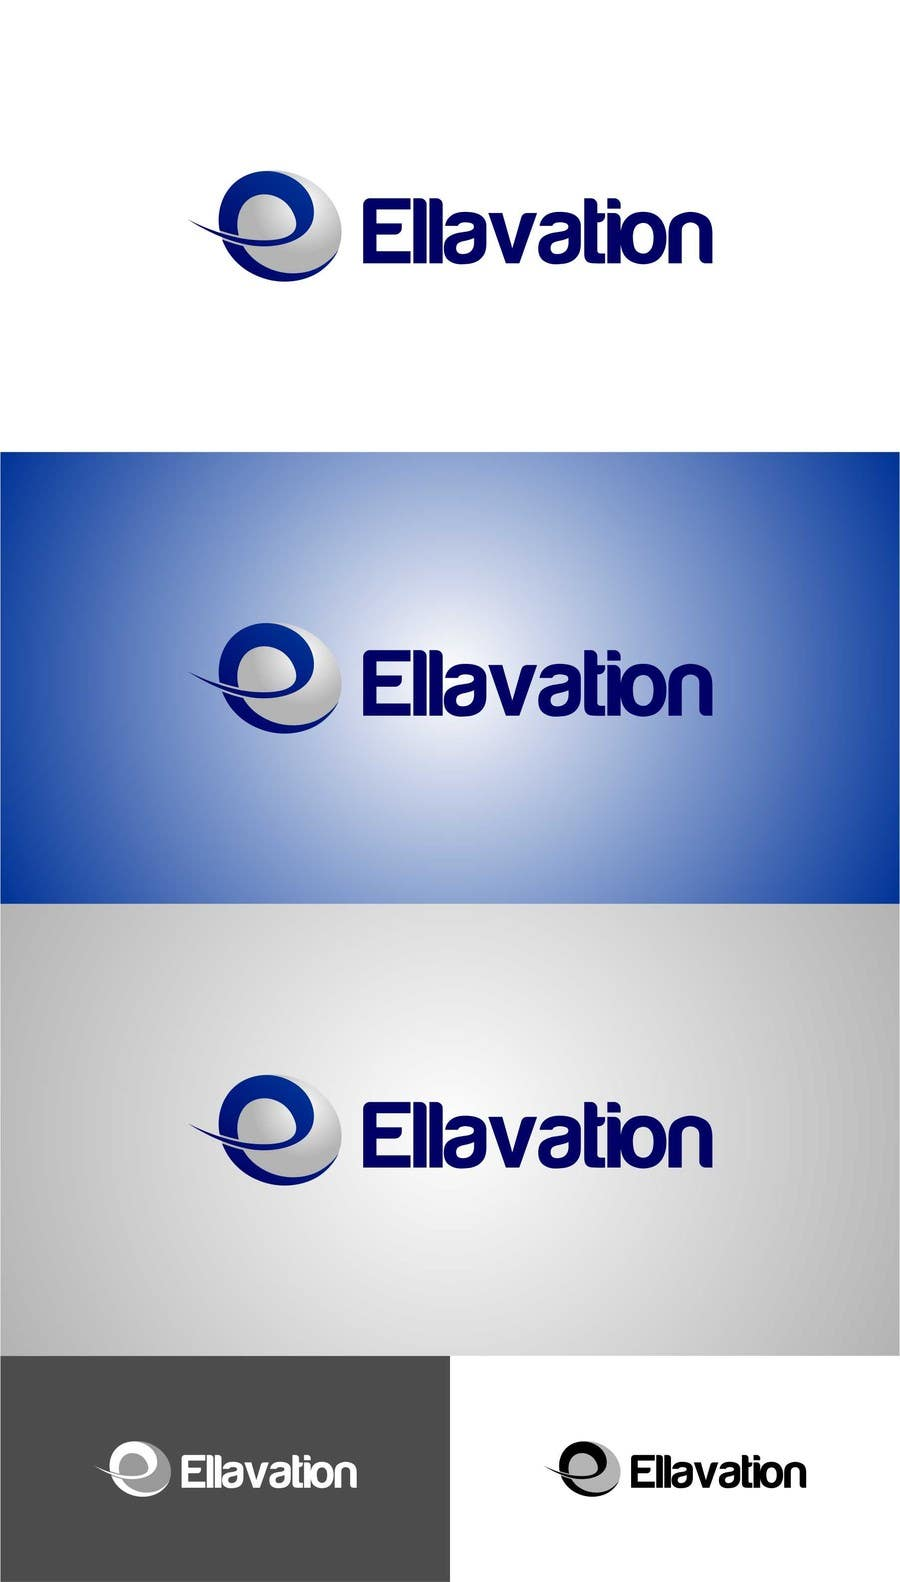 #69 for Design a Logo for Ellavation, LLC a medical device company by trying2w